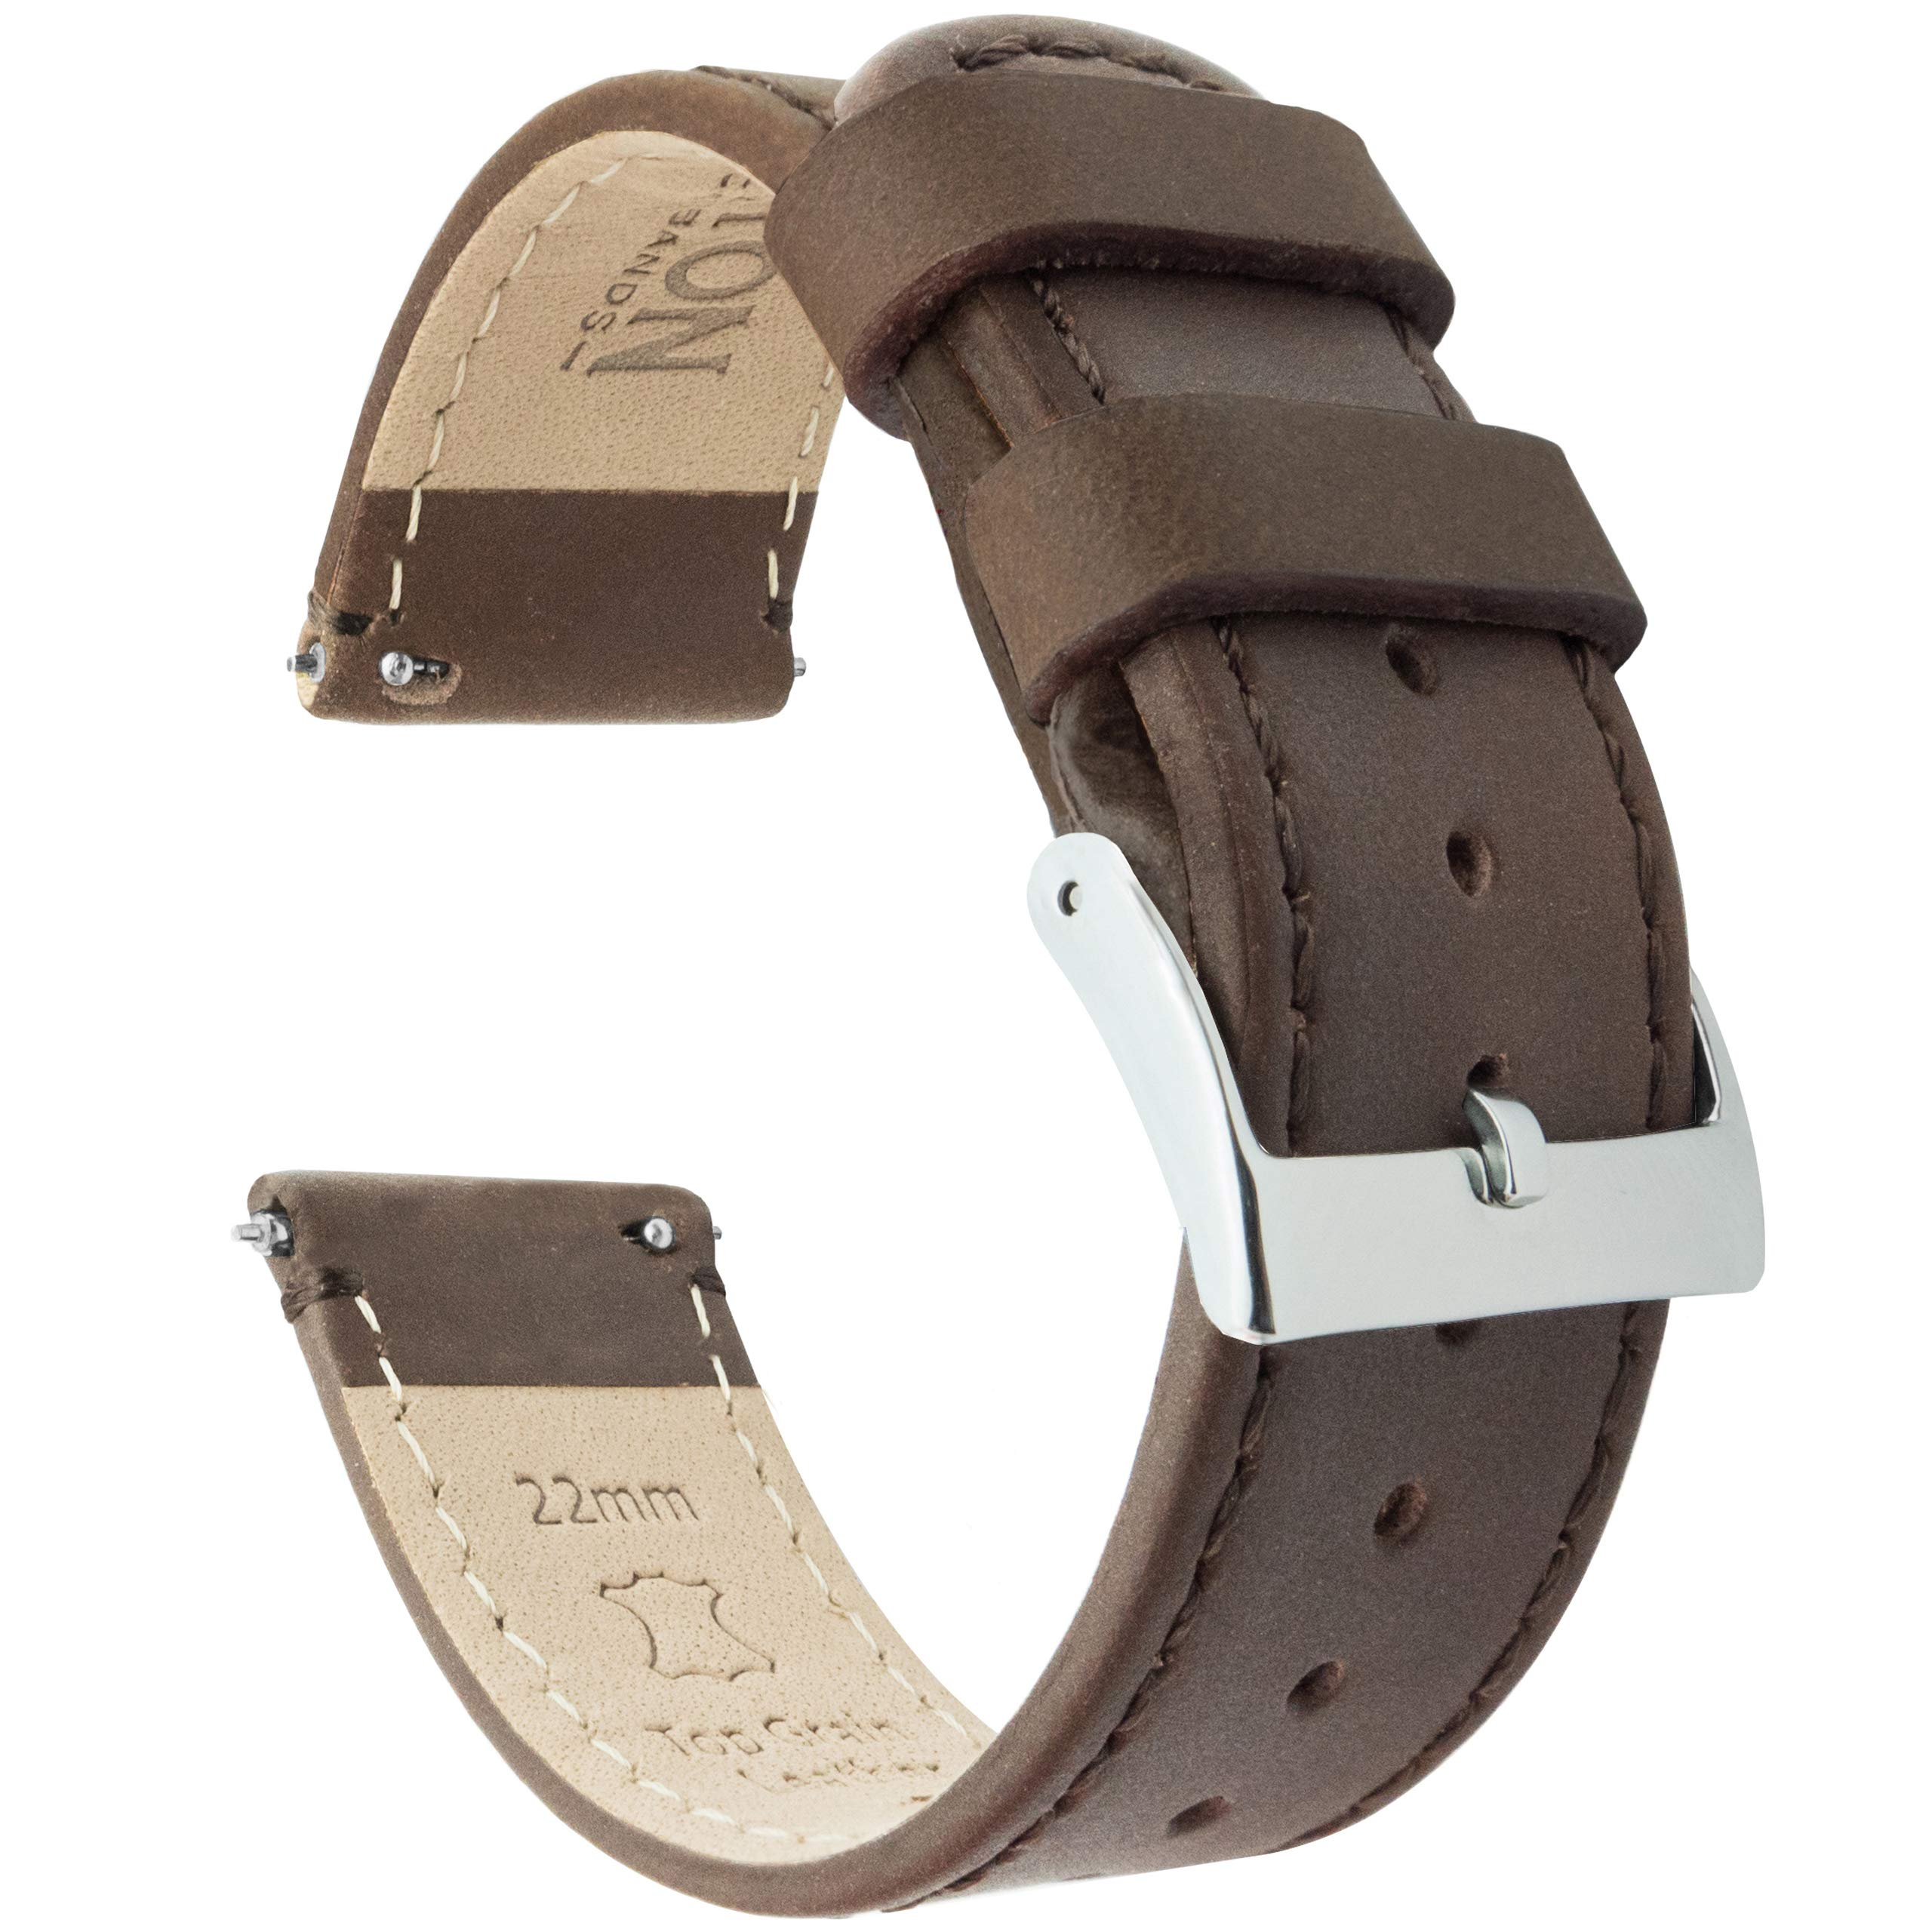 20mm Saddle Brown - Standard Length - Barton Quick Release - Top Grain Leather Watch Band Strap by Barton Watch Bands